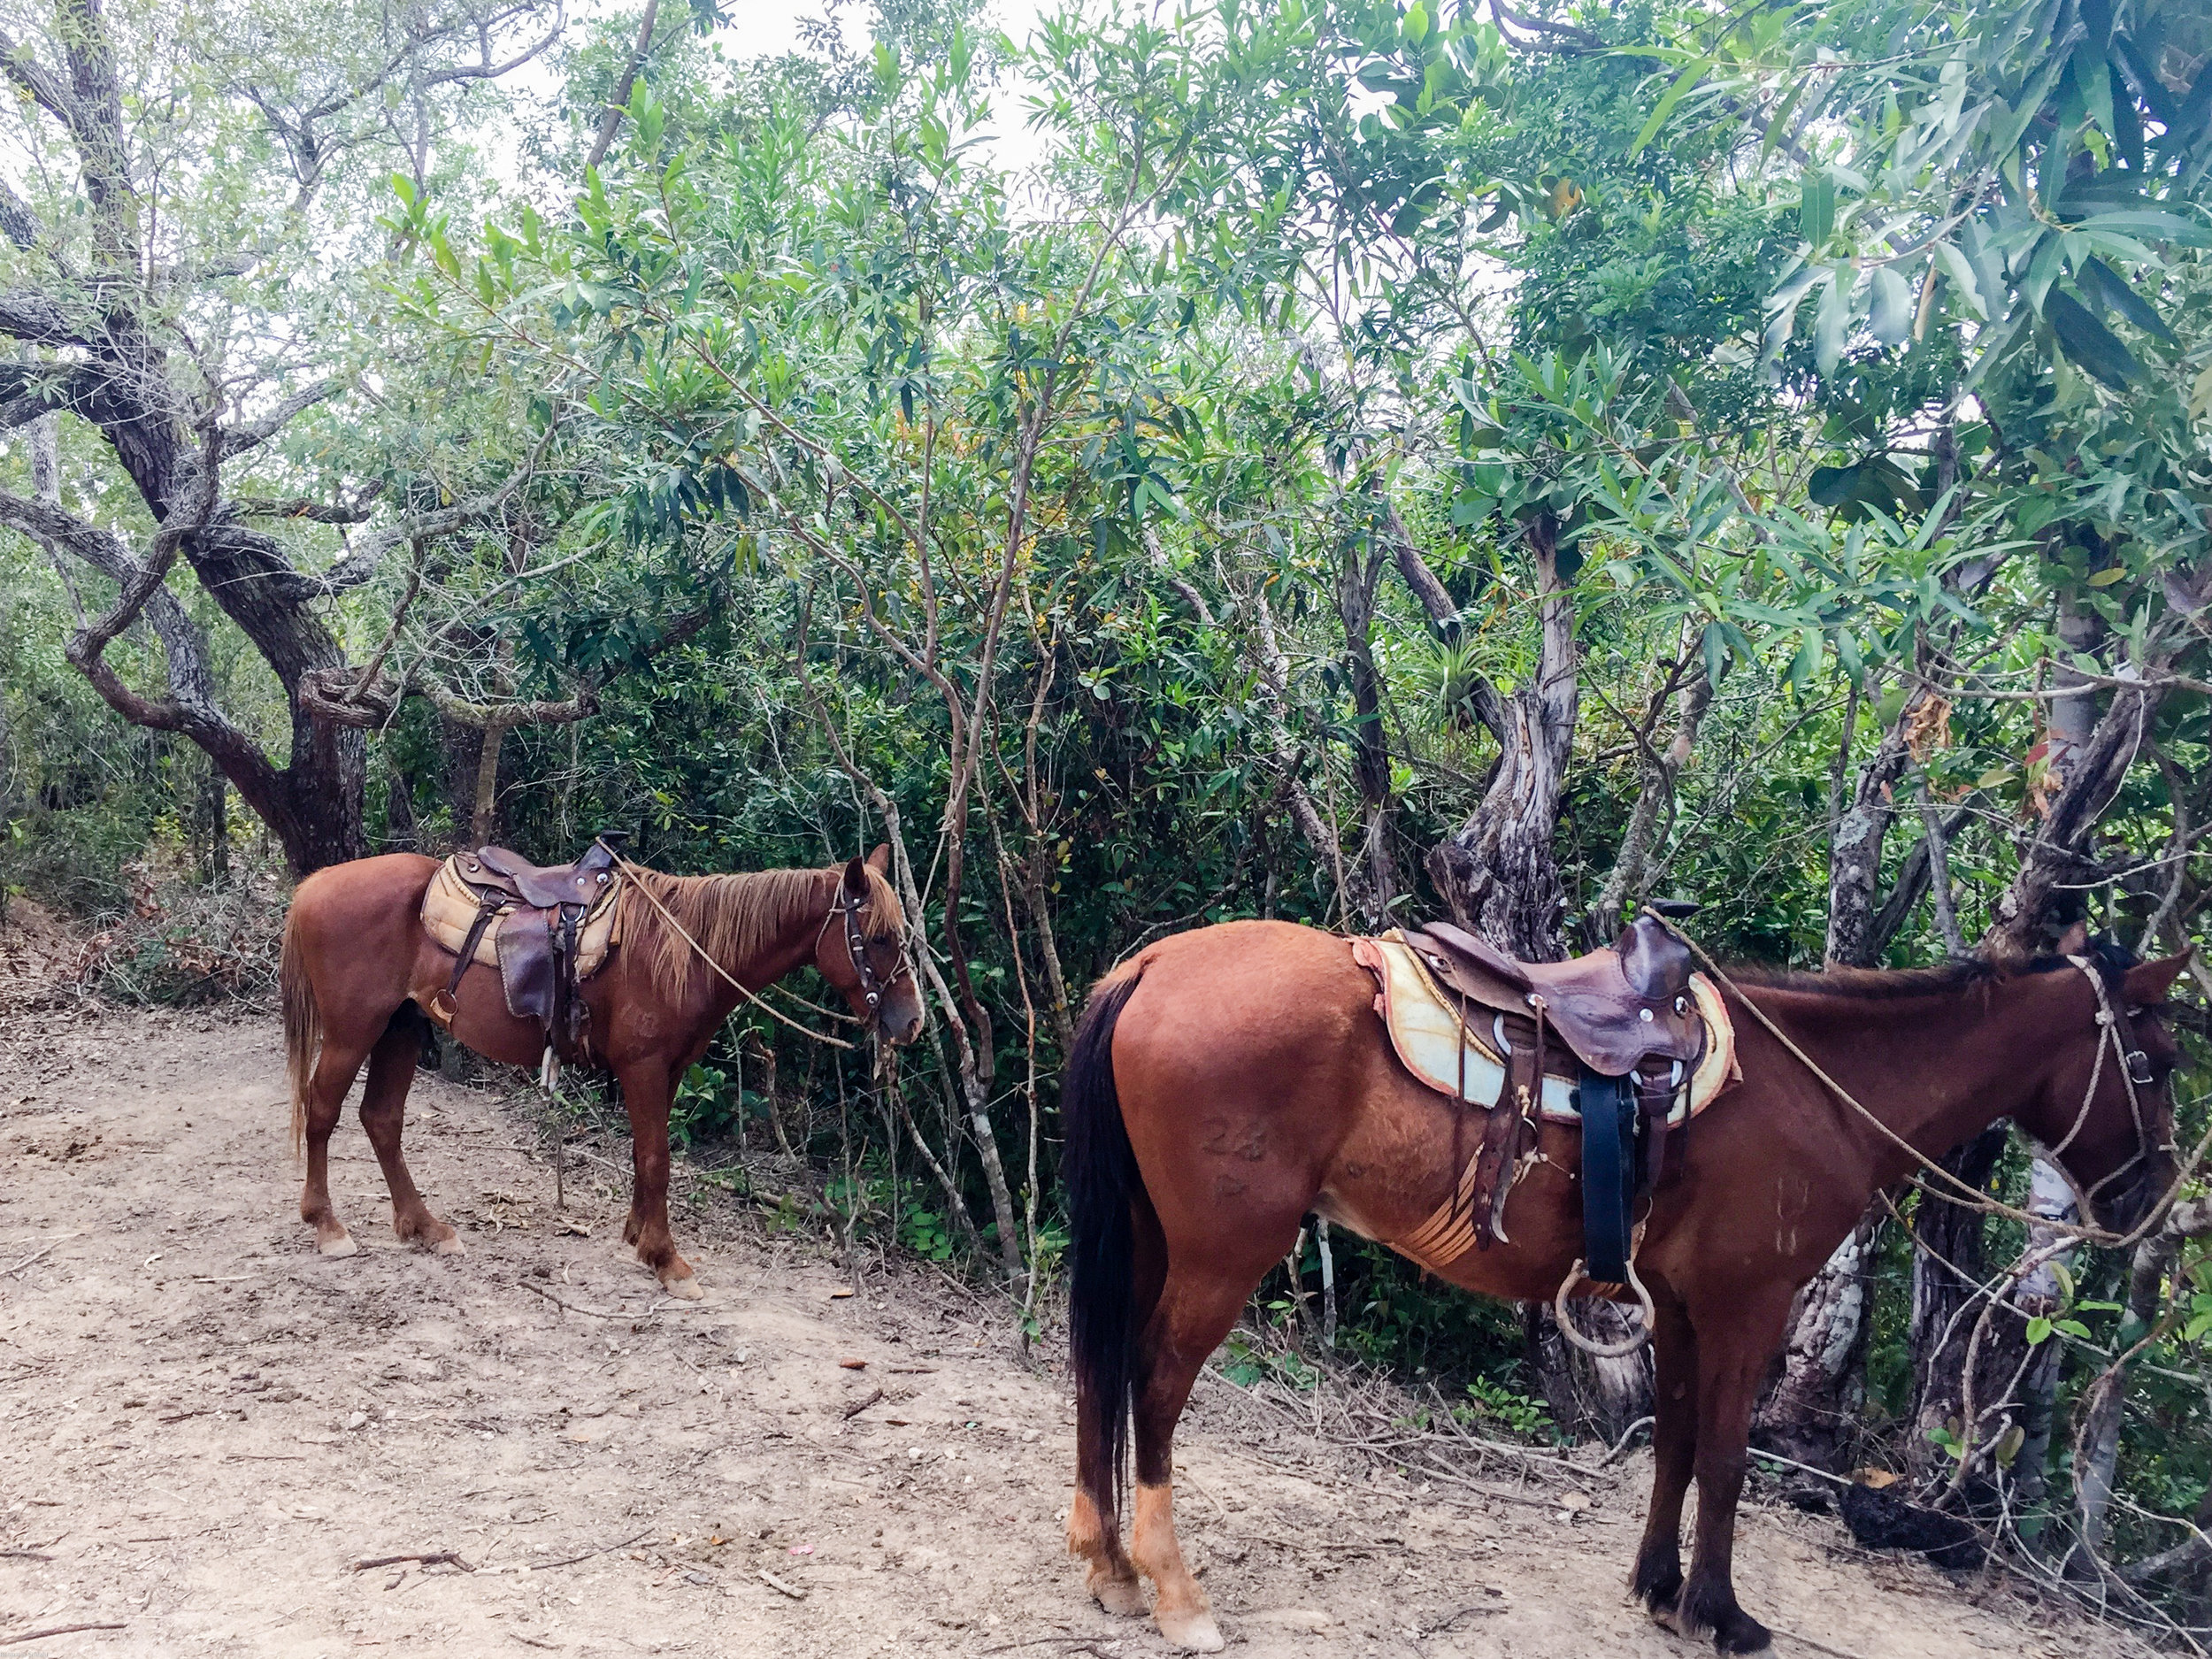 The horses we rode during our tour of Viñales